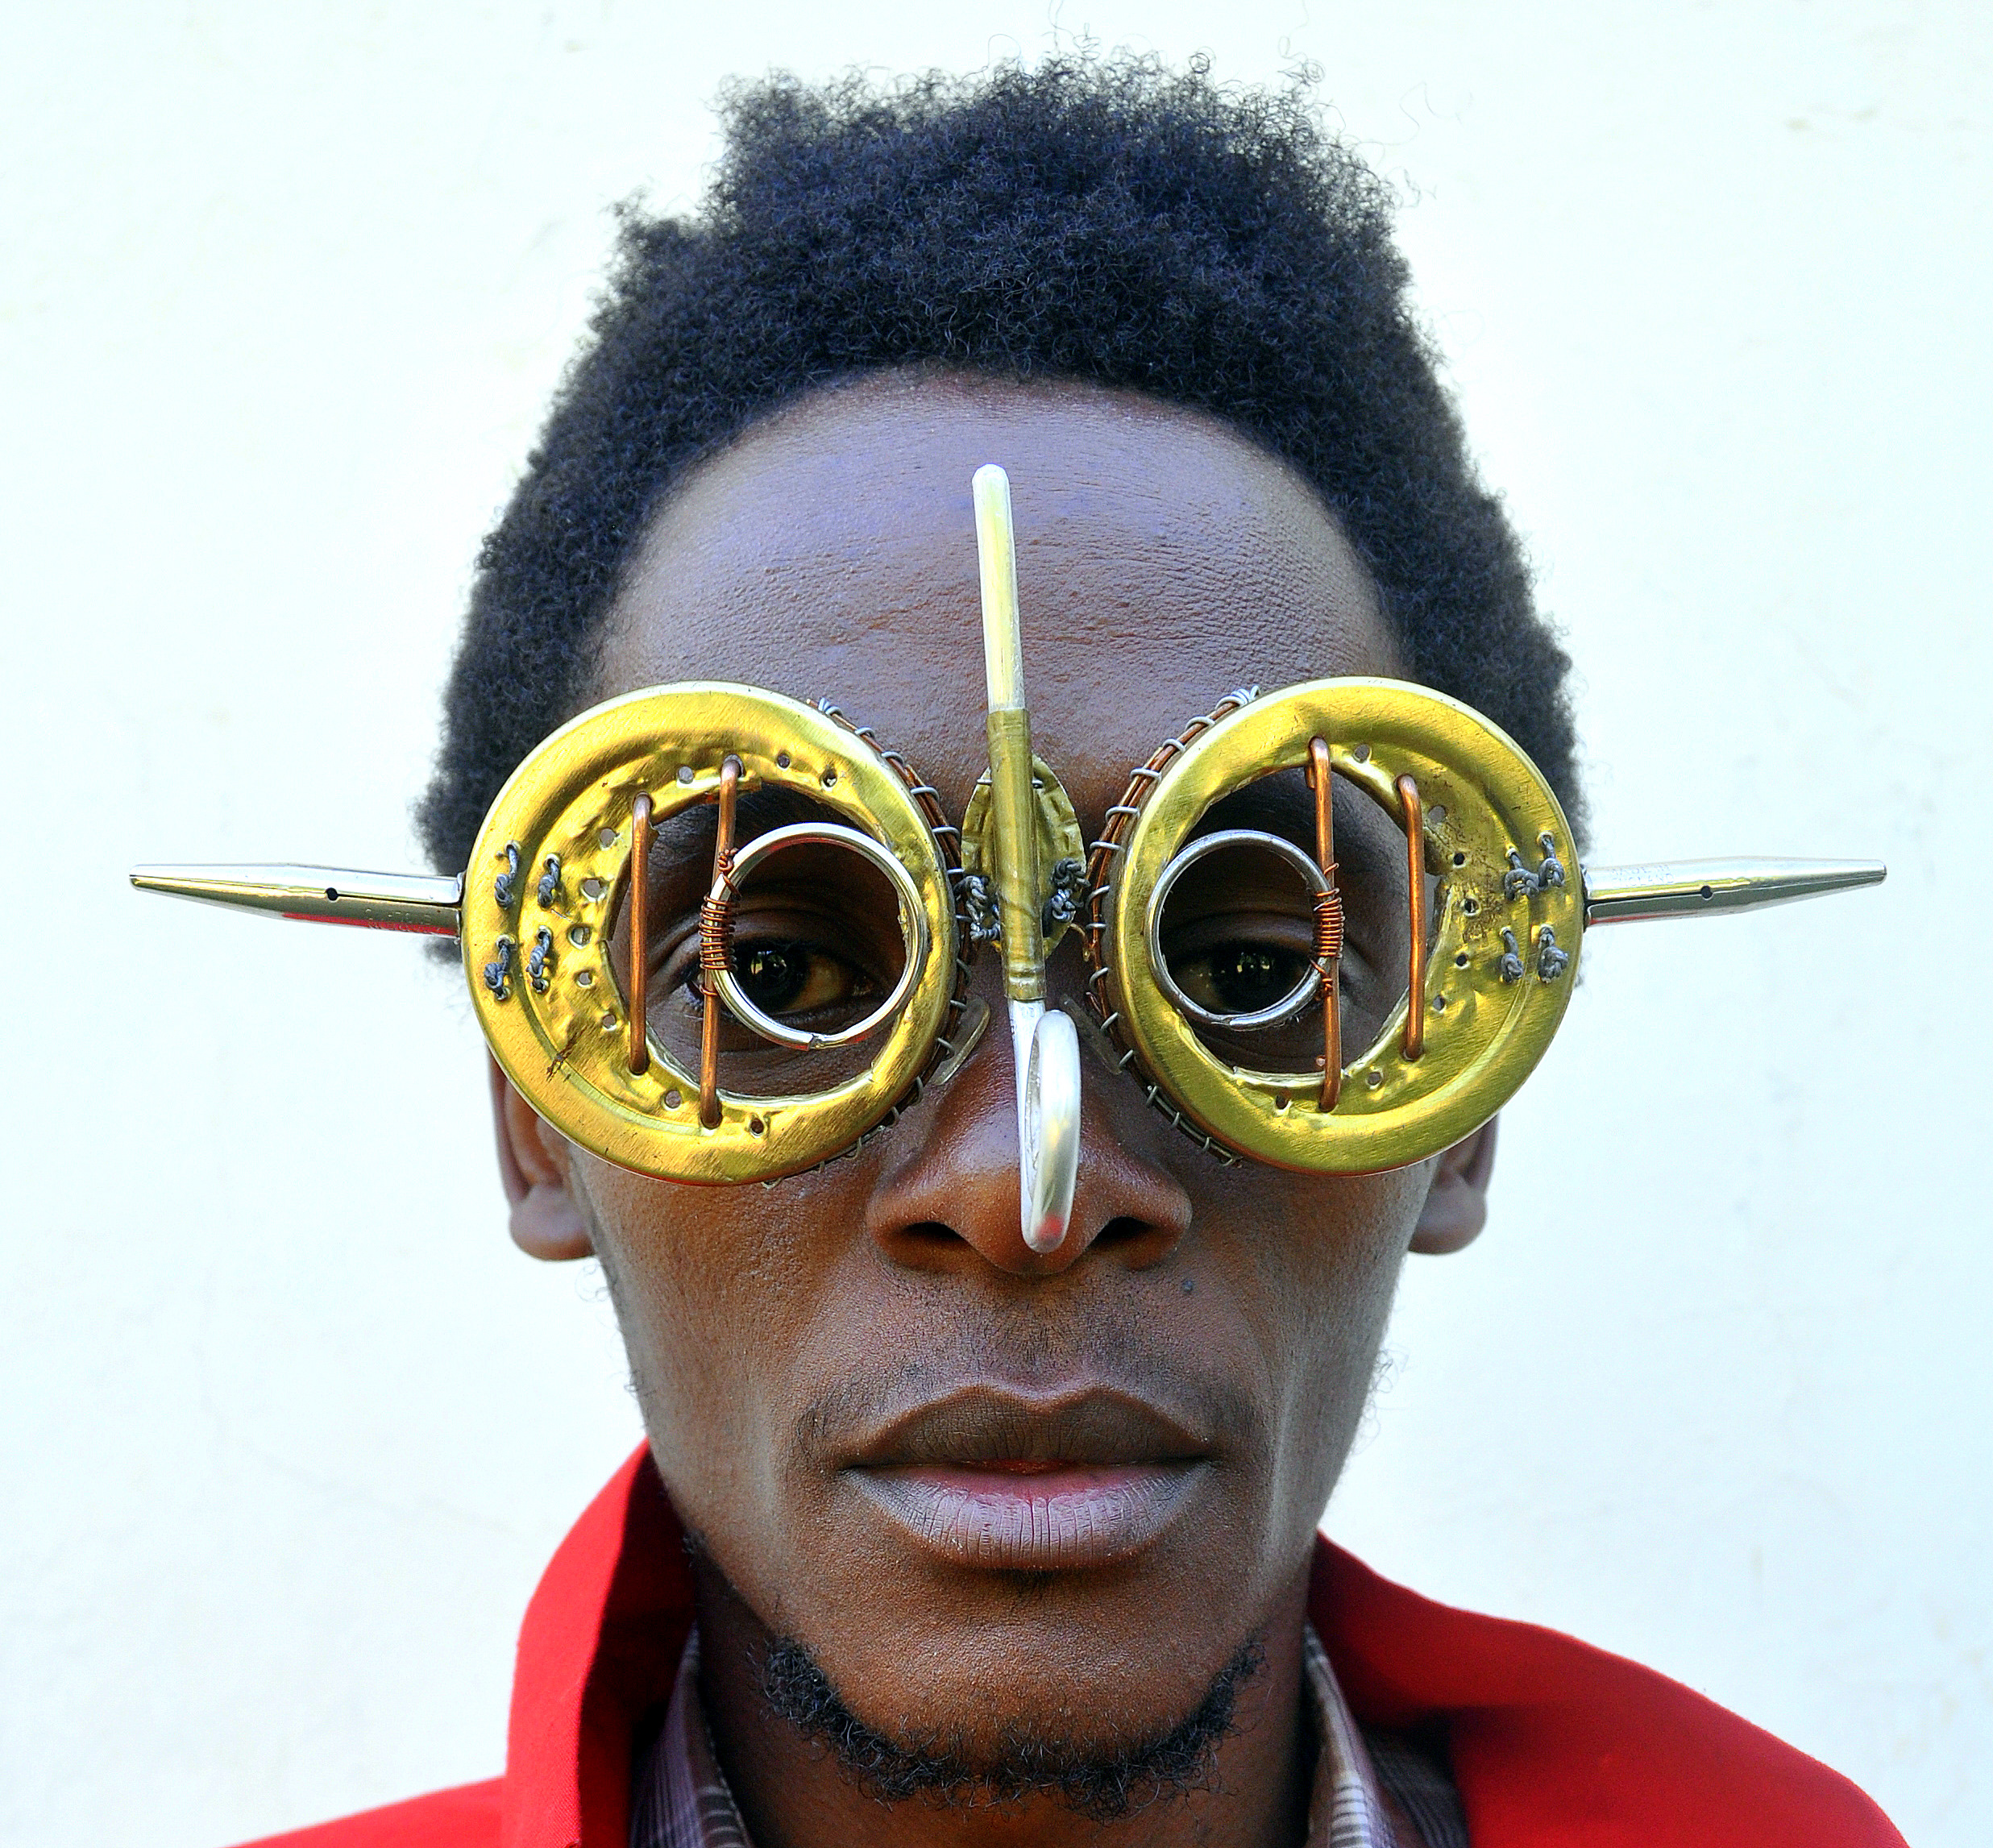 Artist Cyrus Kabiru turns recyclables and found materials into art. These spectacles are crafted from recycled materials found around his home in Nairobi, Kenya.